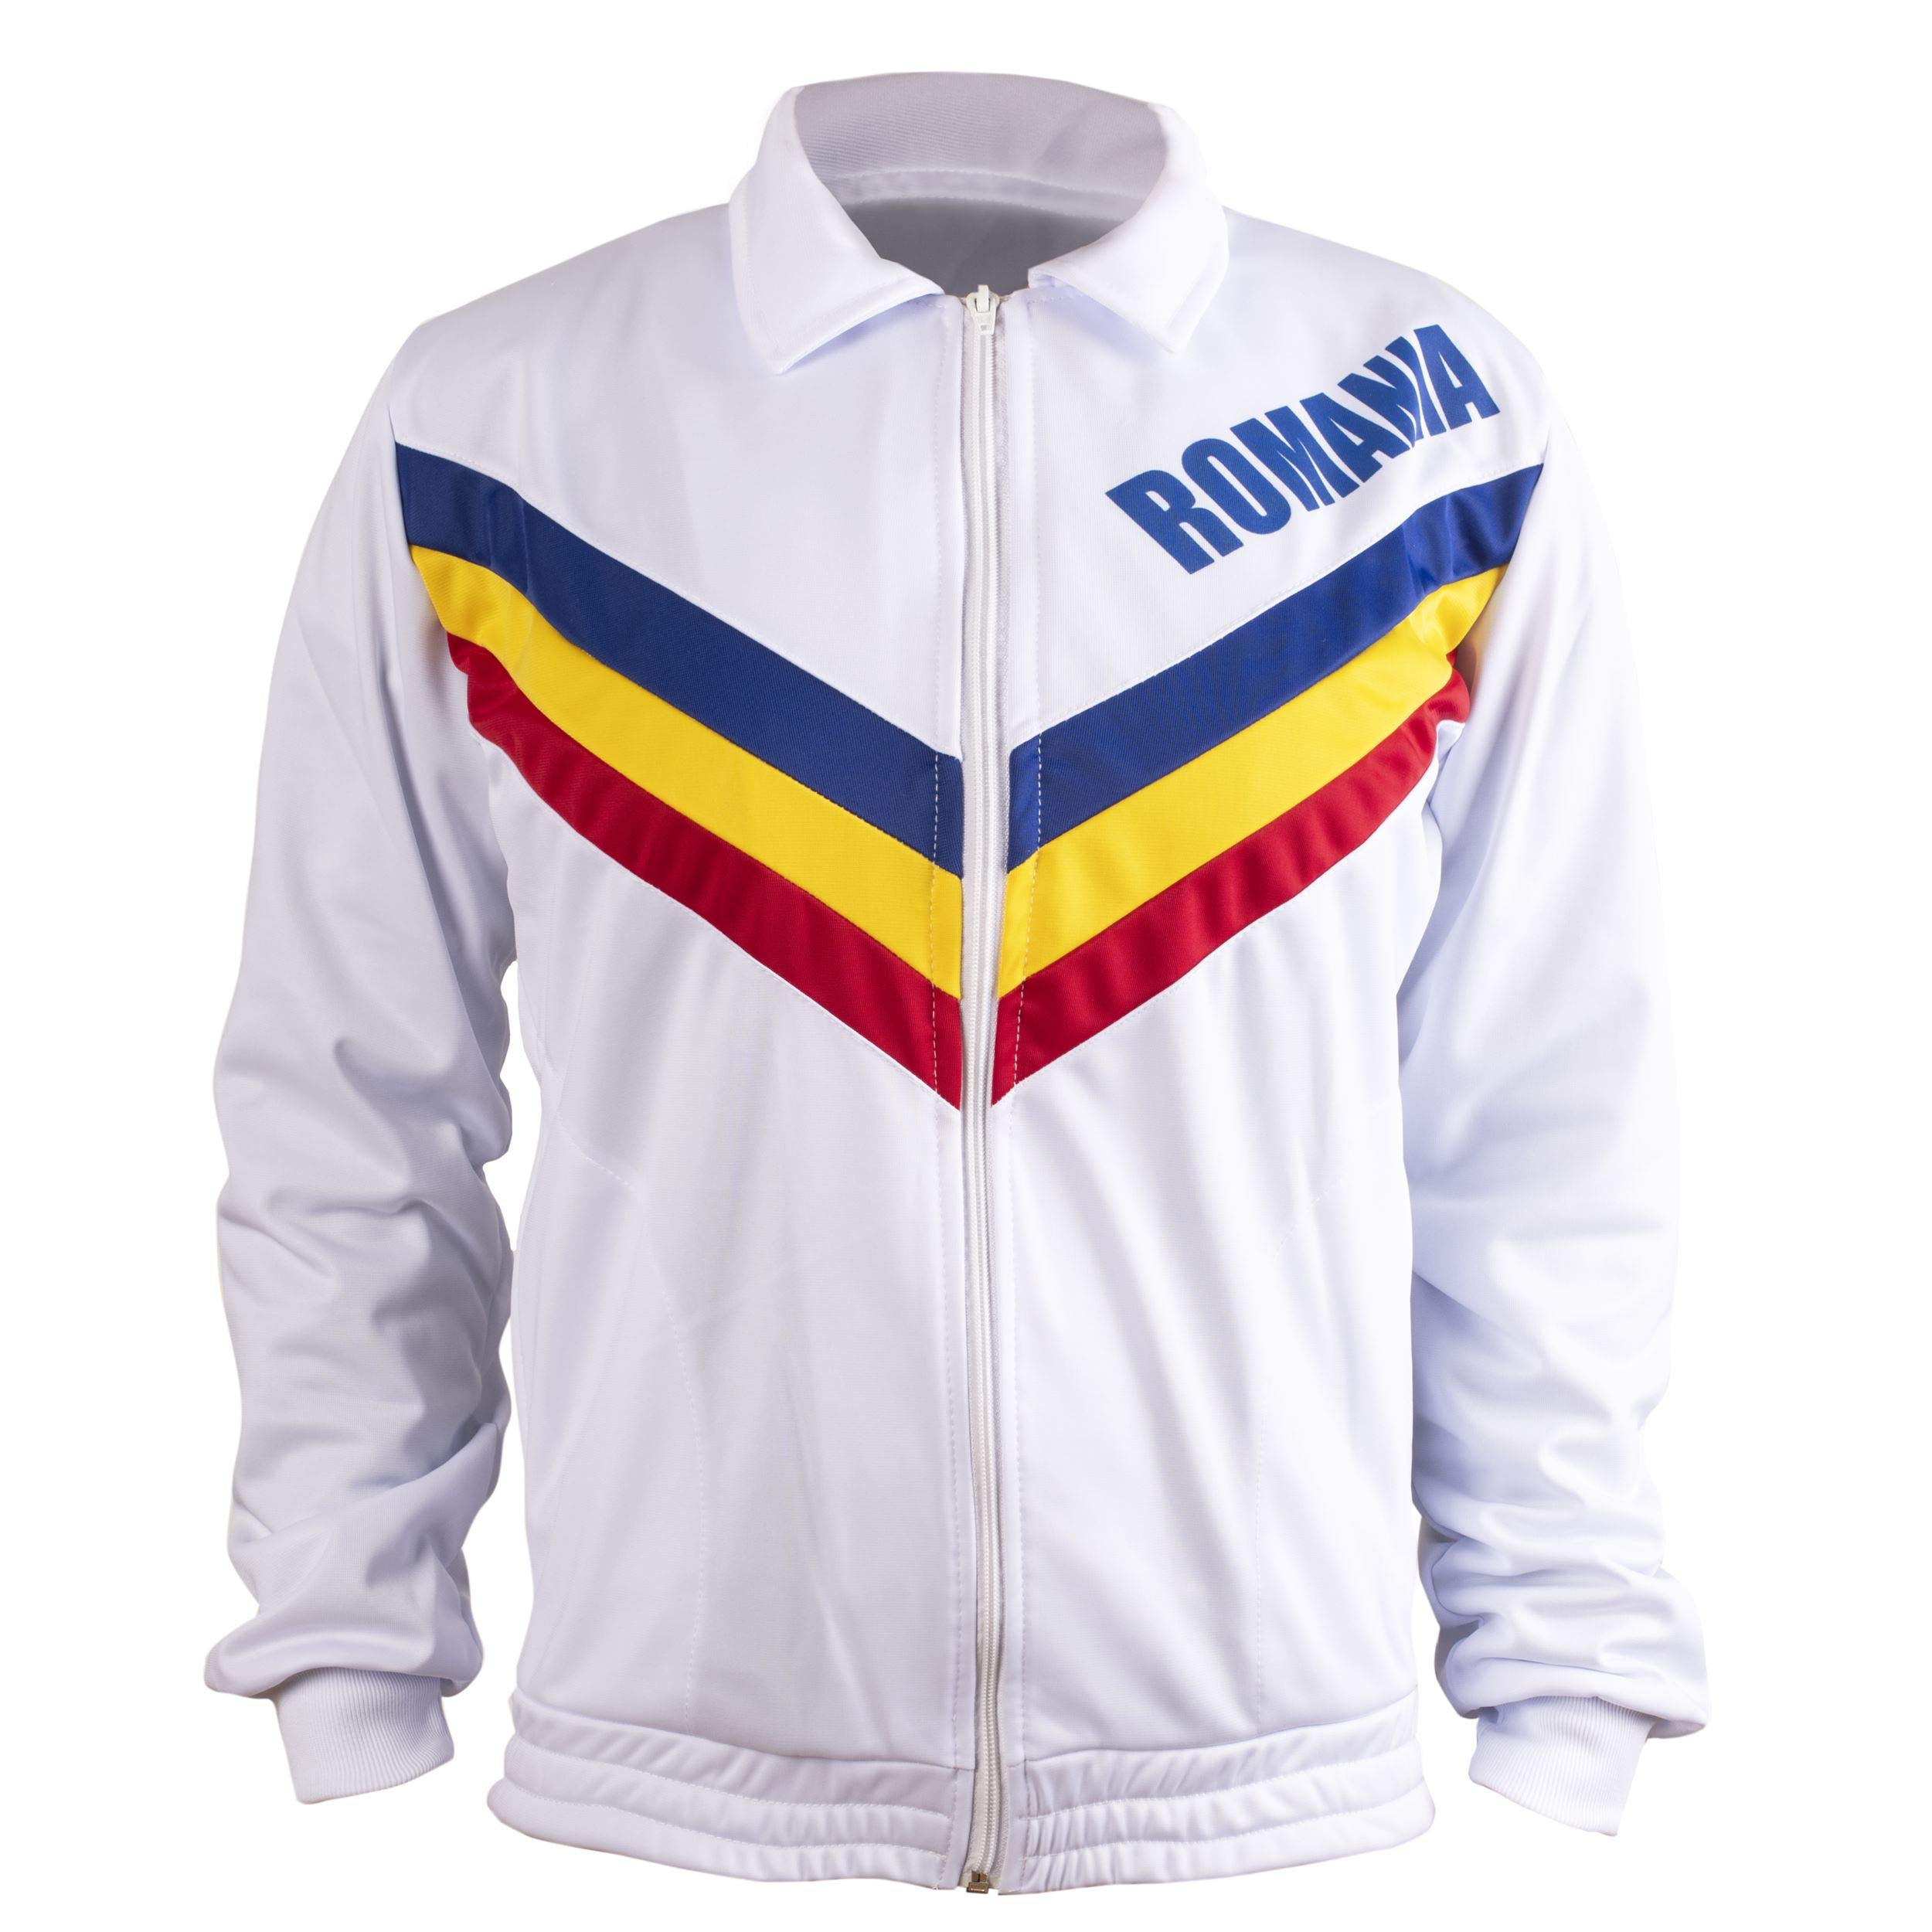 Children's Romania Olympic Gymnastic Jacket - Montreal 1976 Olympics Edition - Perfect 10 Gold Medal - 11-12